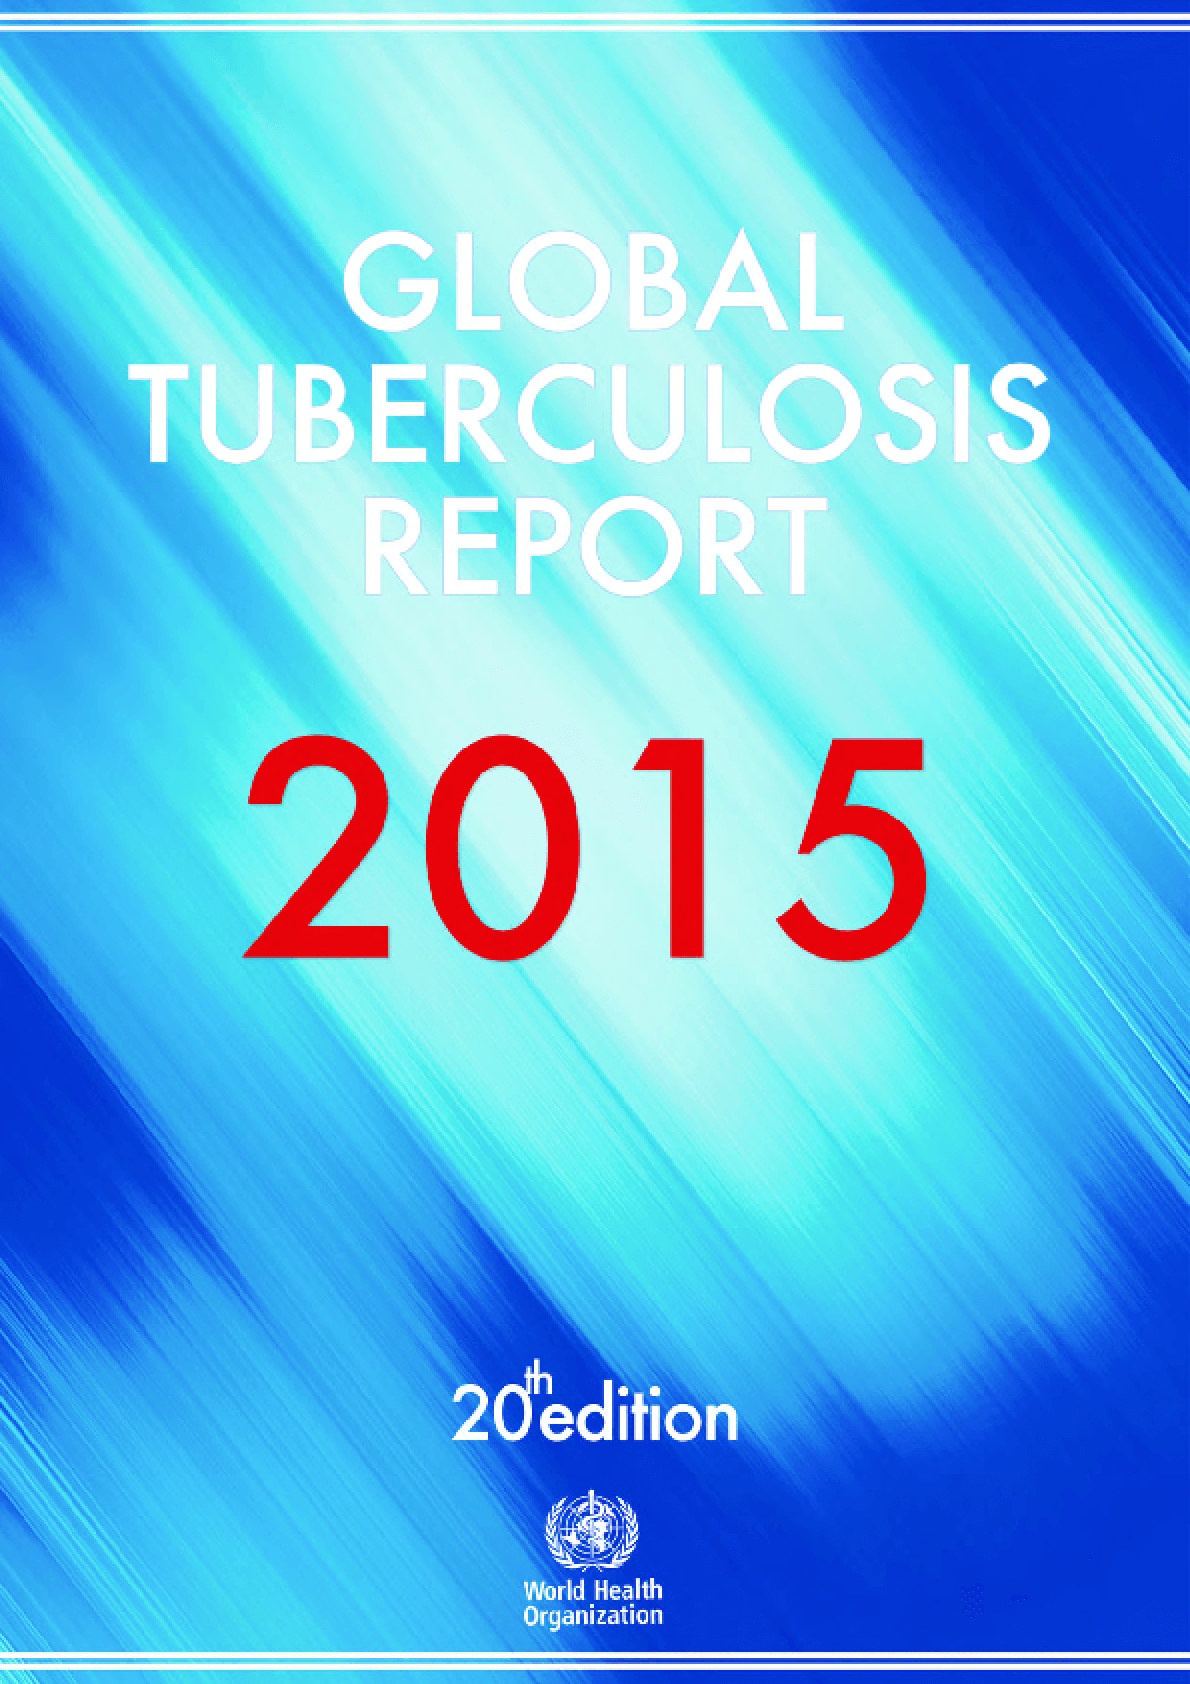 Global Tuberculosis Report 2015